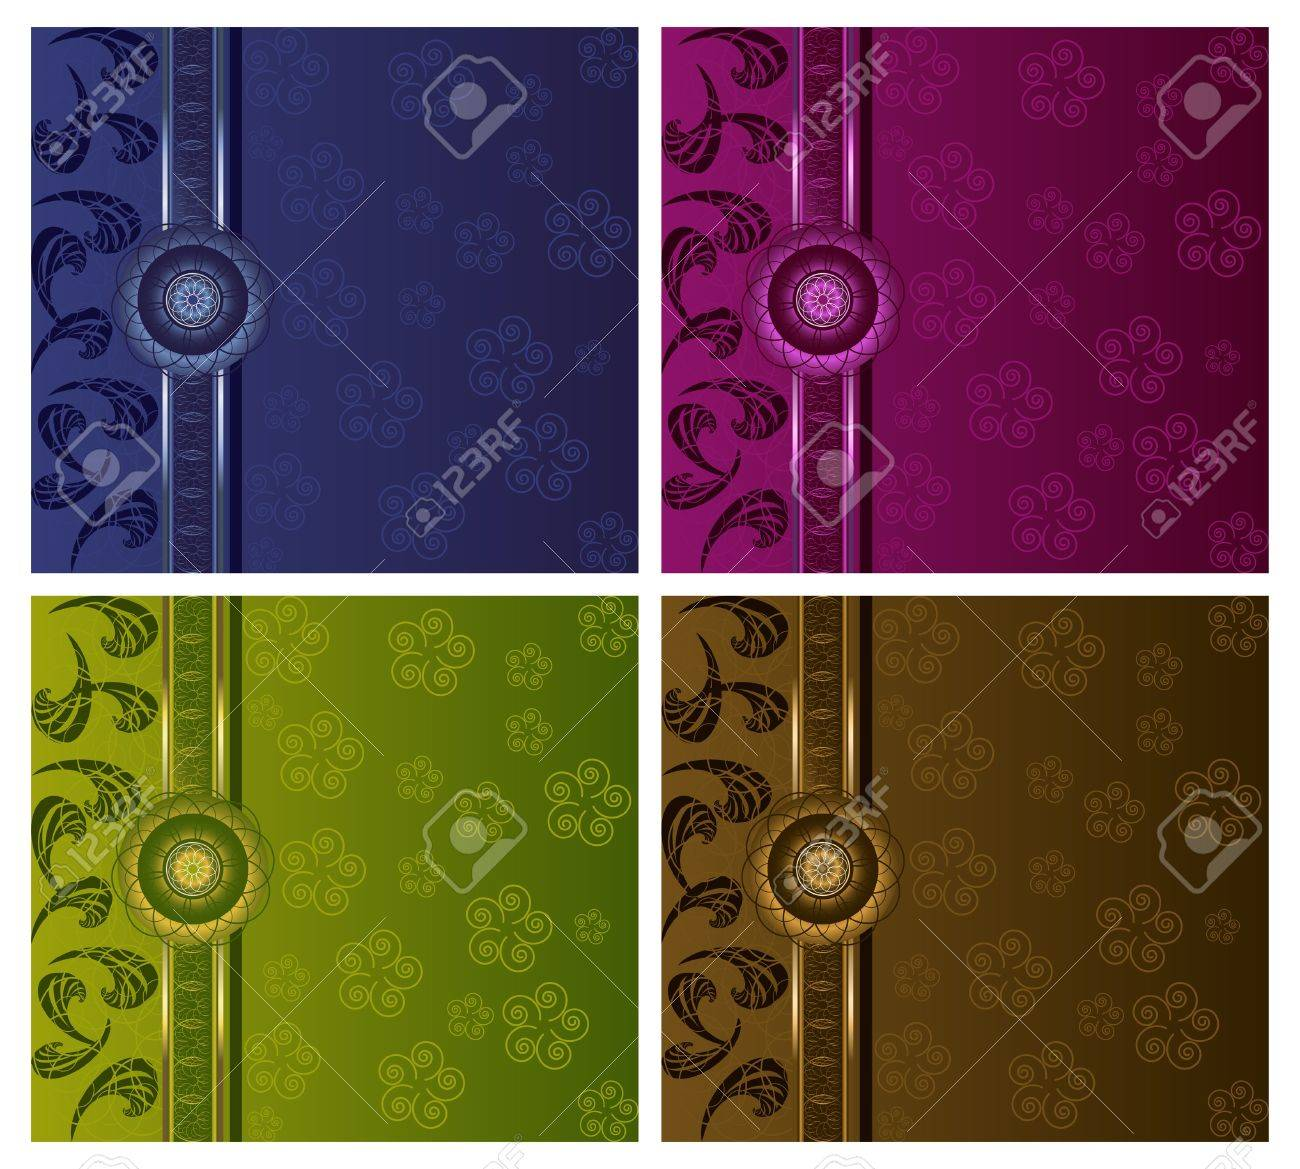 Floral luxury backgrounds set Stock Vector - 12853872